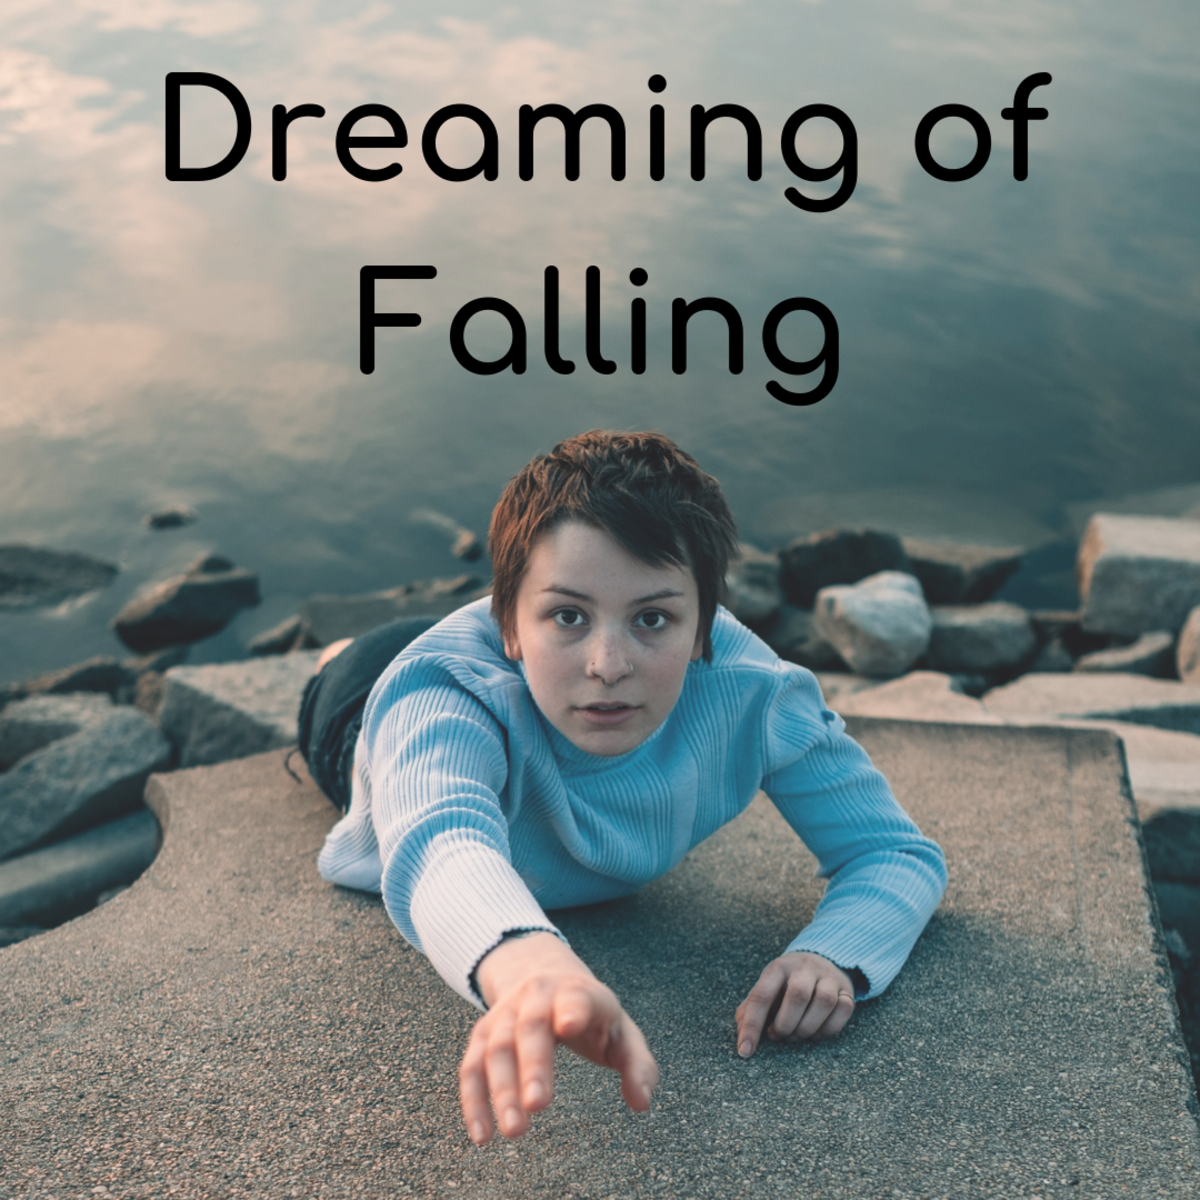 Dreams About Falling and Meaning